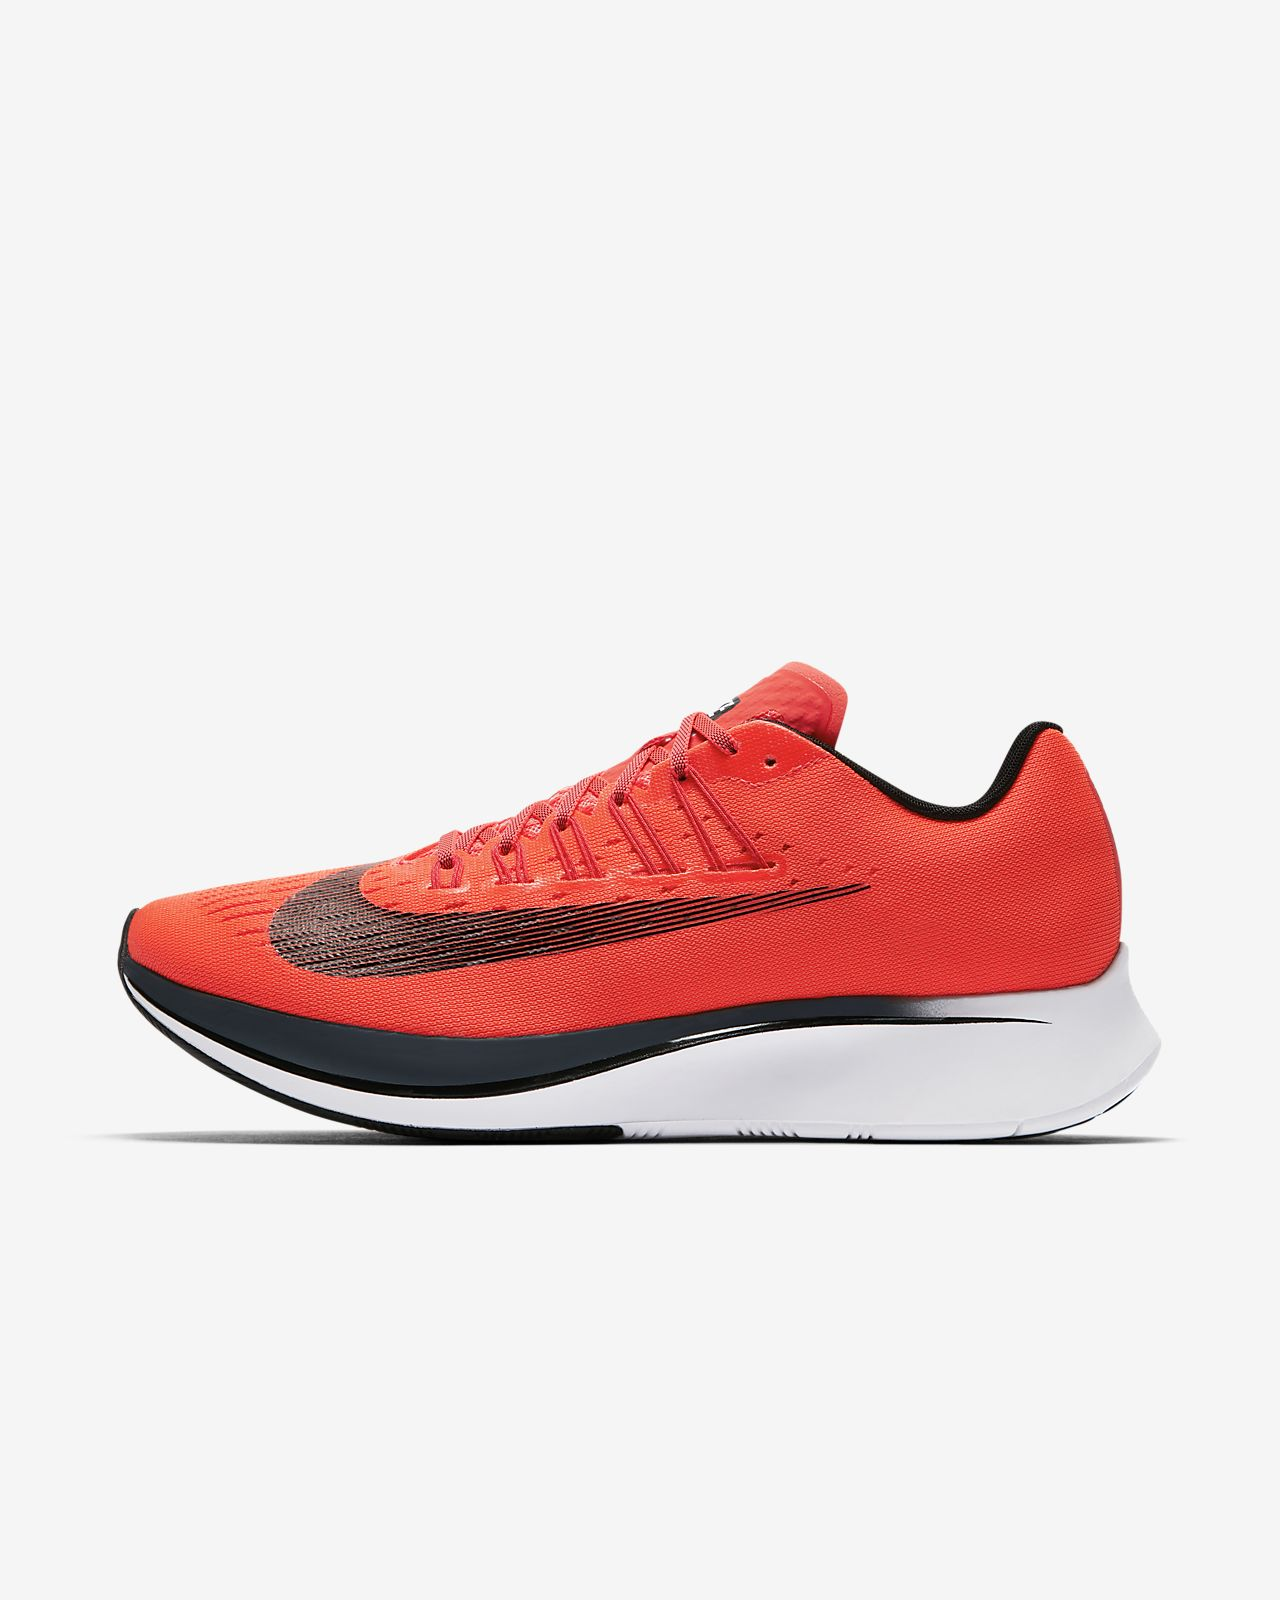 separation shoes 0bdd5 fc48b ... Nike Zoom Fly Mens Running Shoe